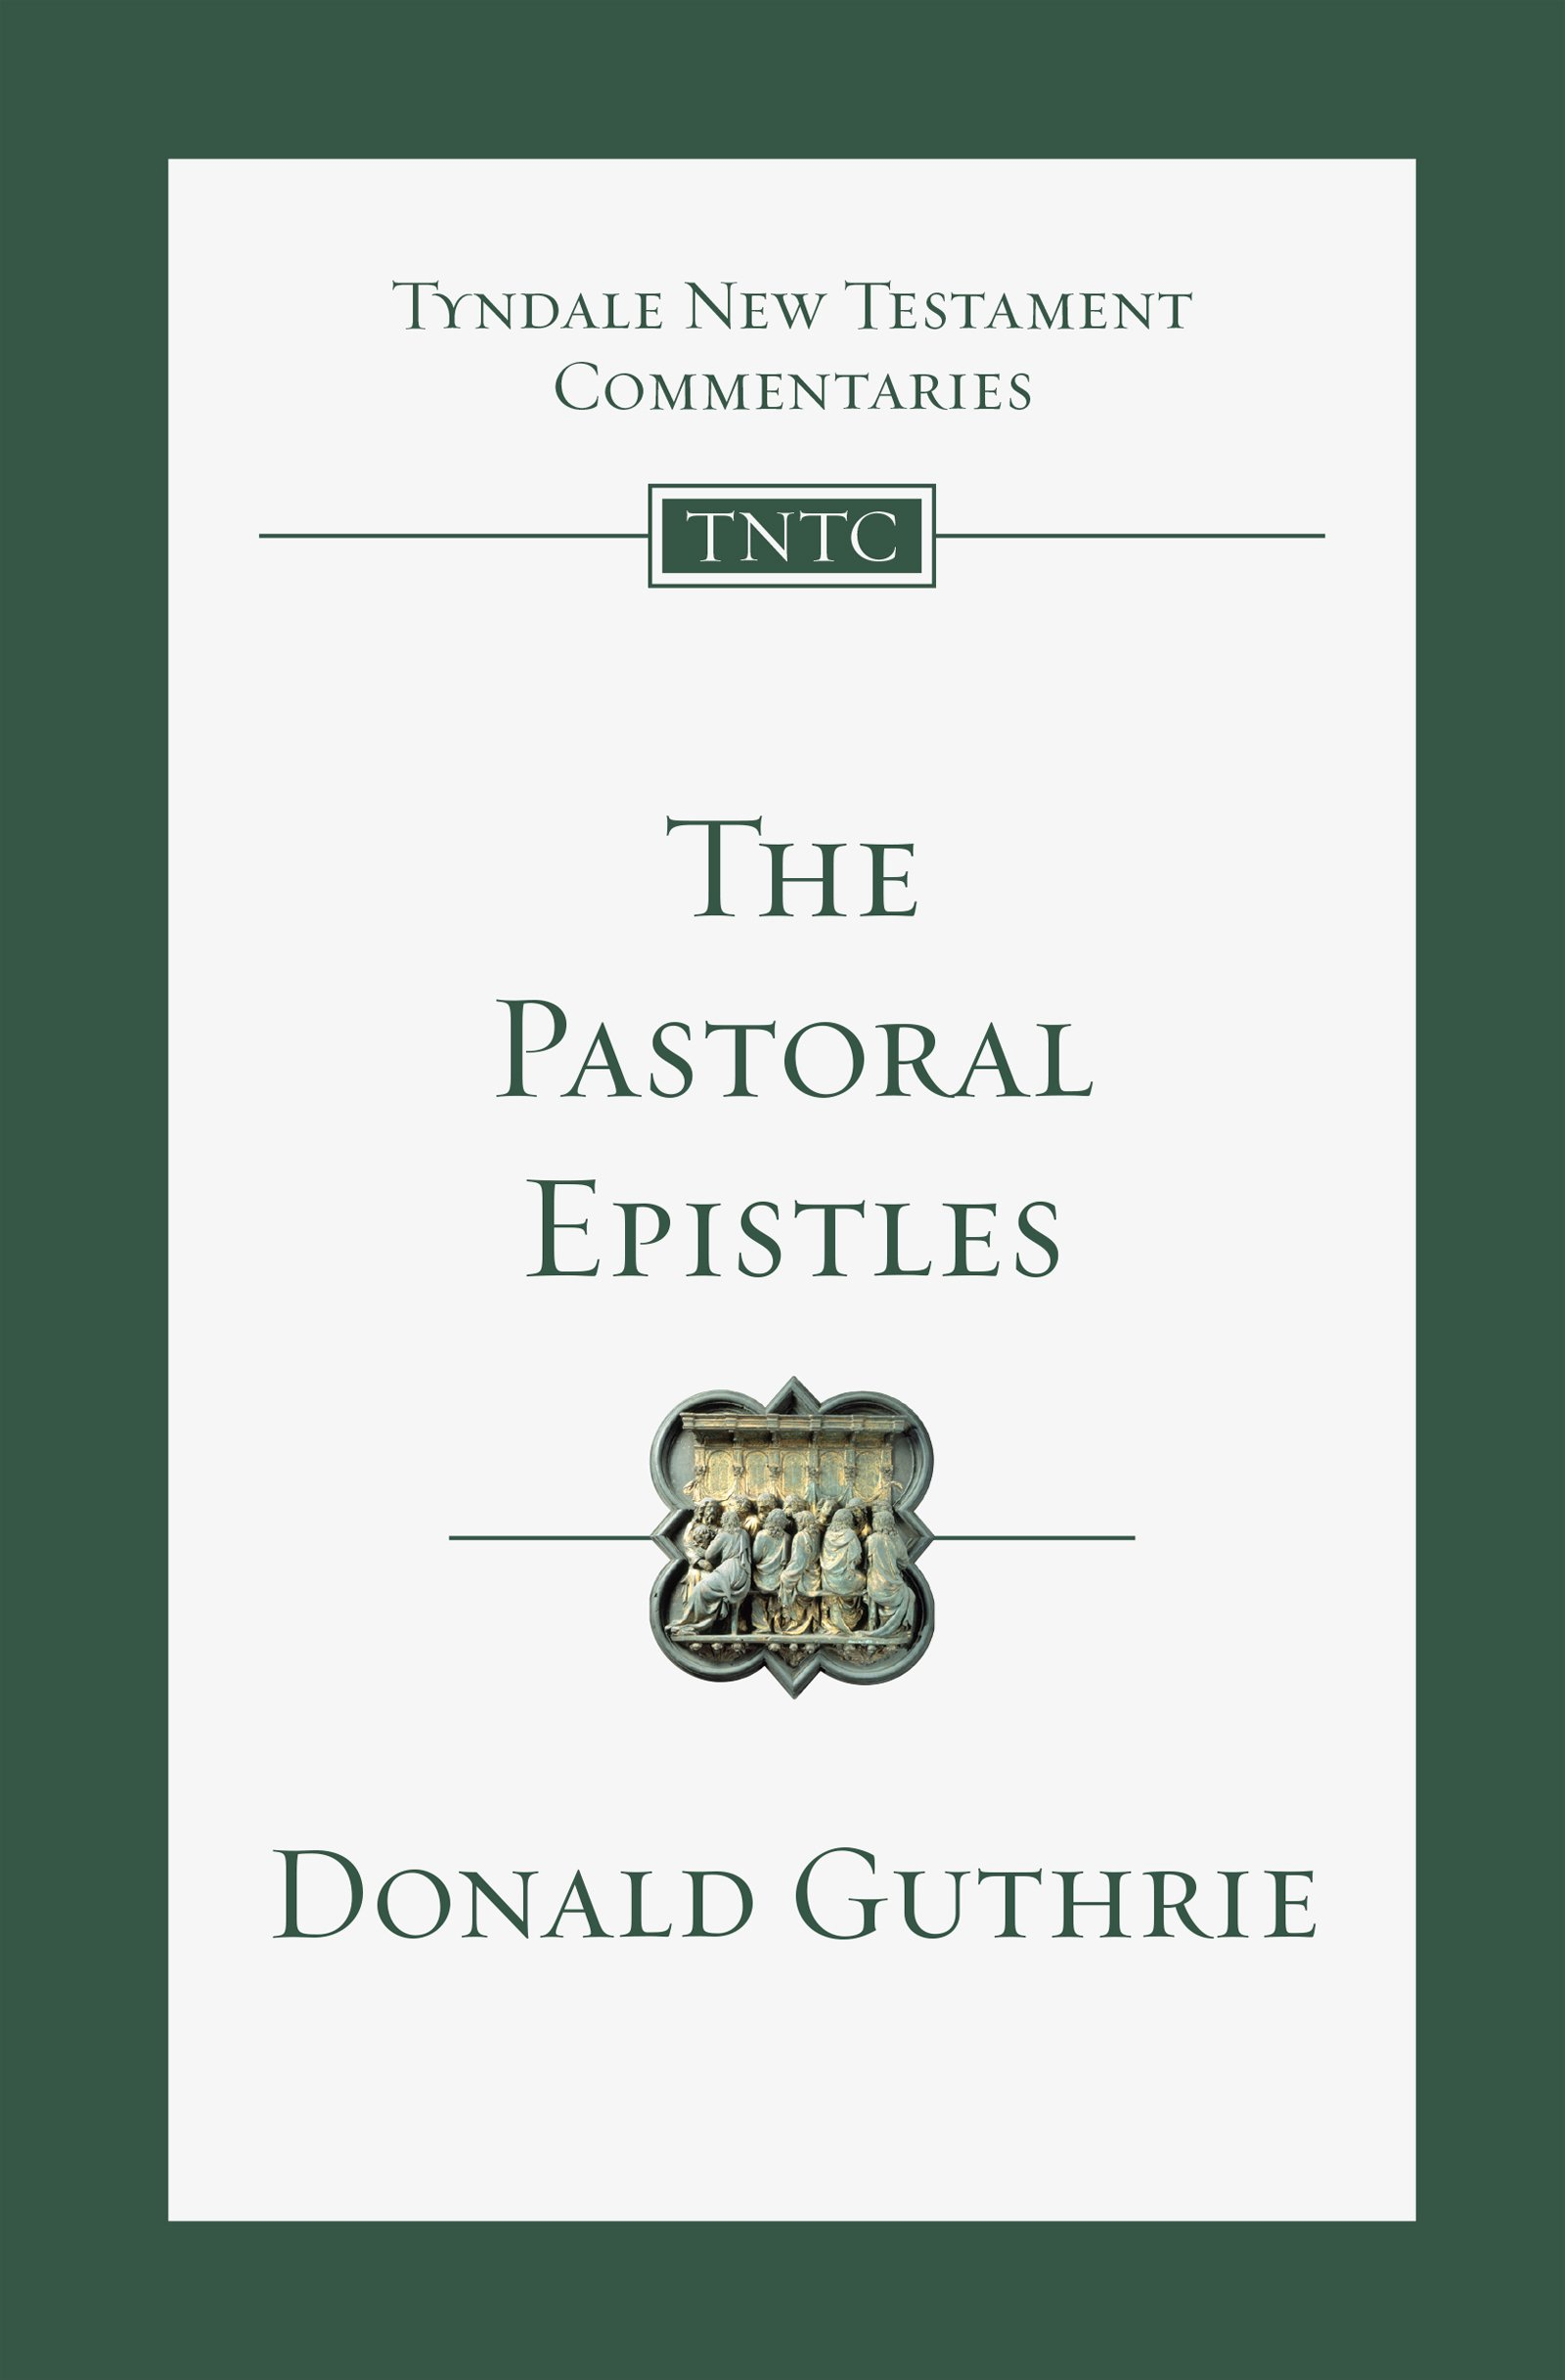 The Pastoral Epistles (Tyndale New Testament Commentaries (IVP Numbered)):  Dr. Donald Guthrie Ph.D.: 9780830842445: Amazon.com: Books